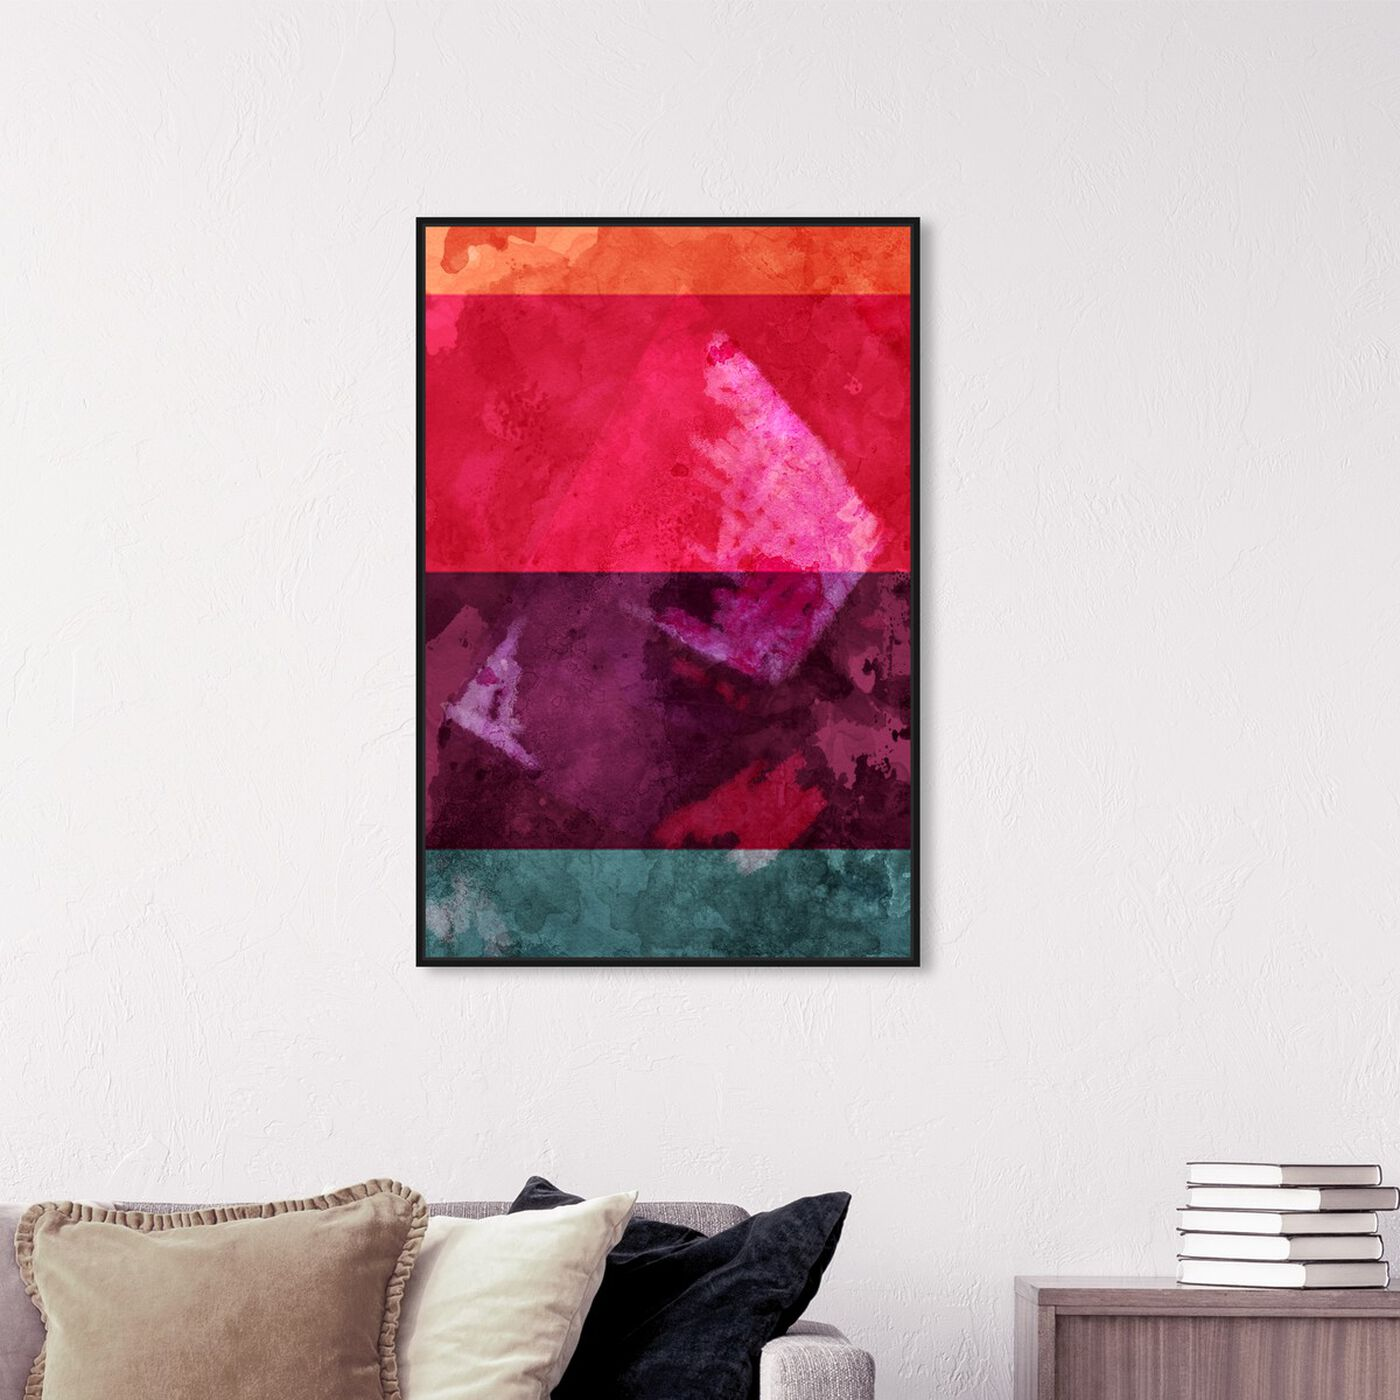 Hanging view of You Make Me featuring abstract and paint art.